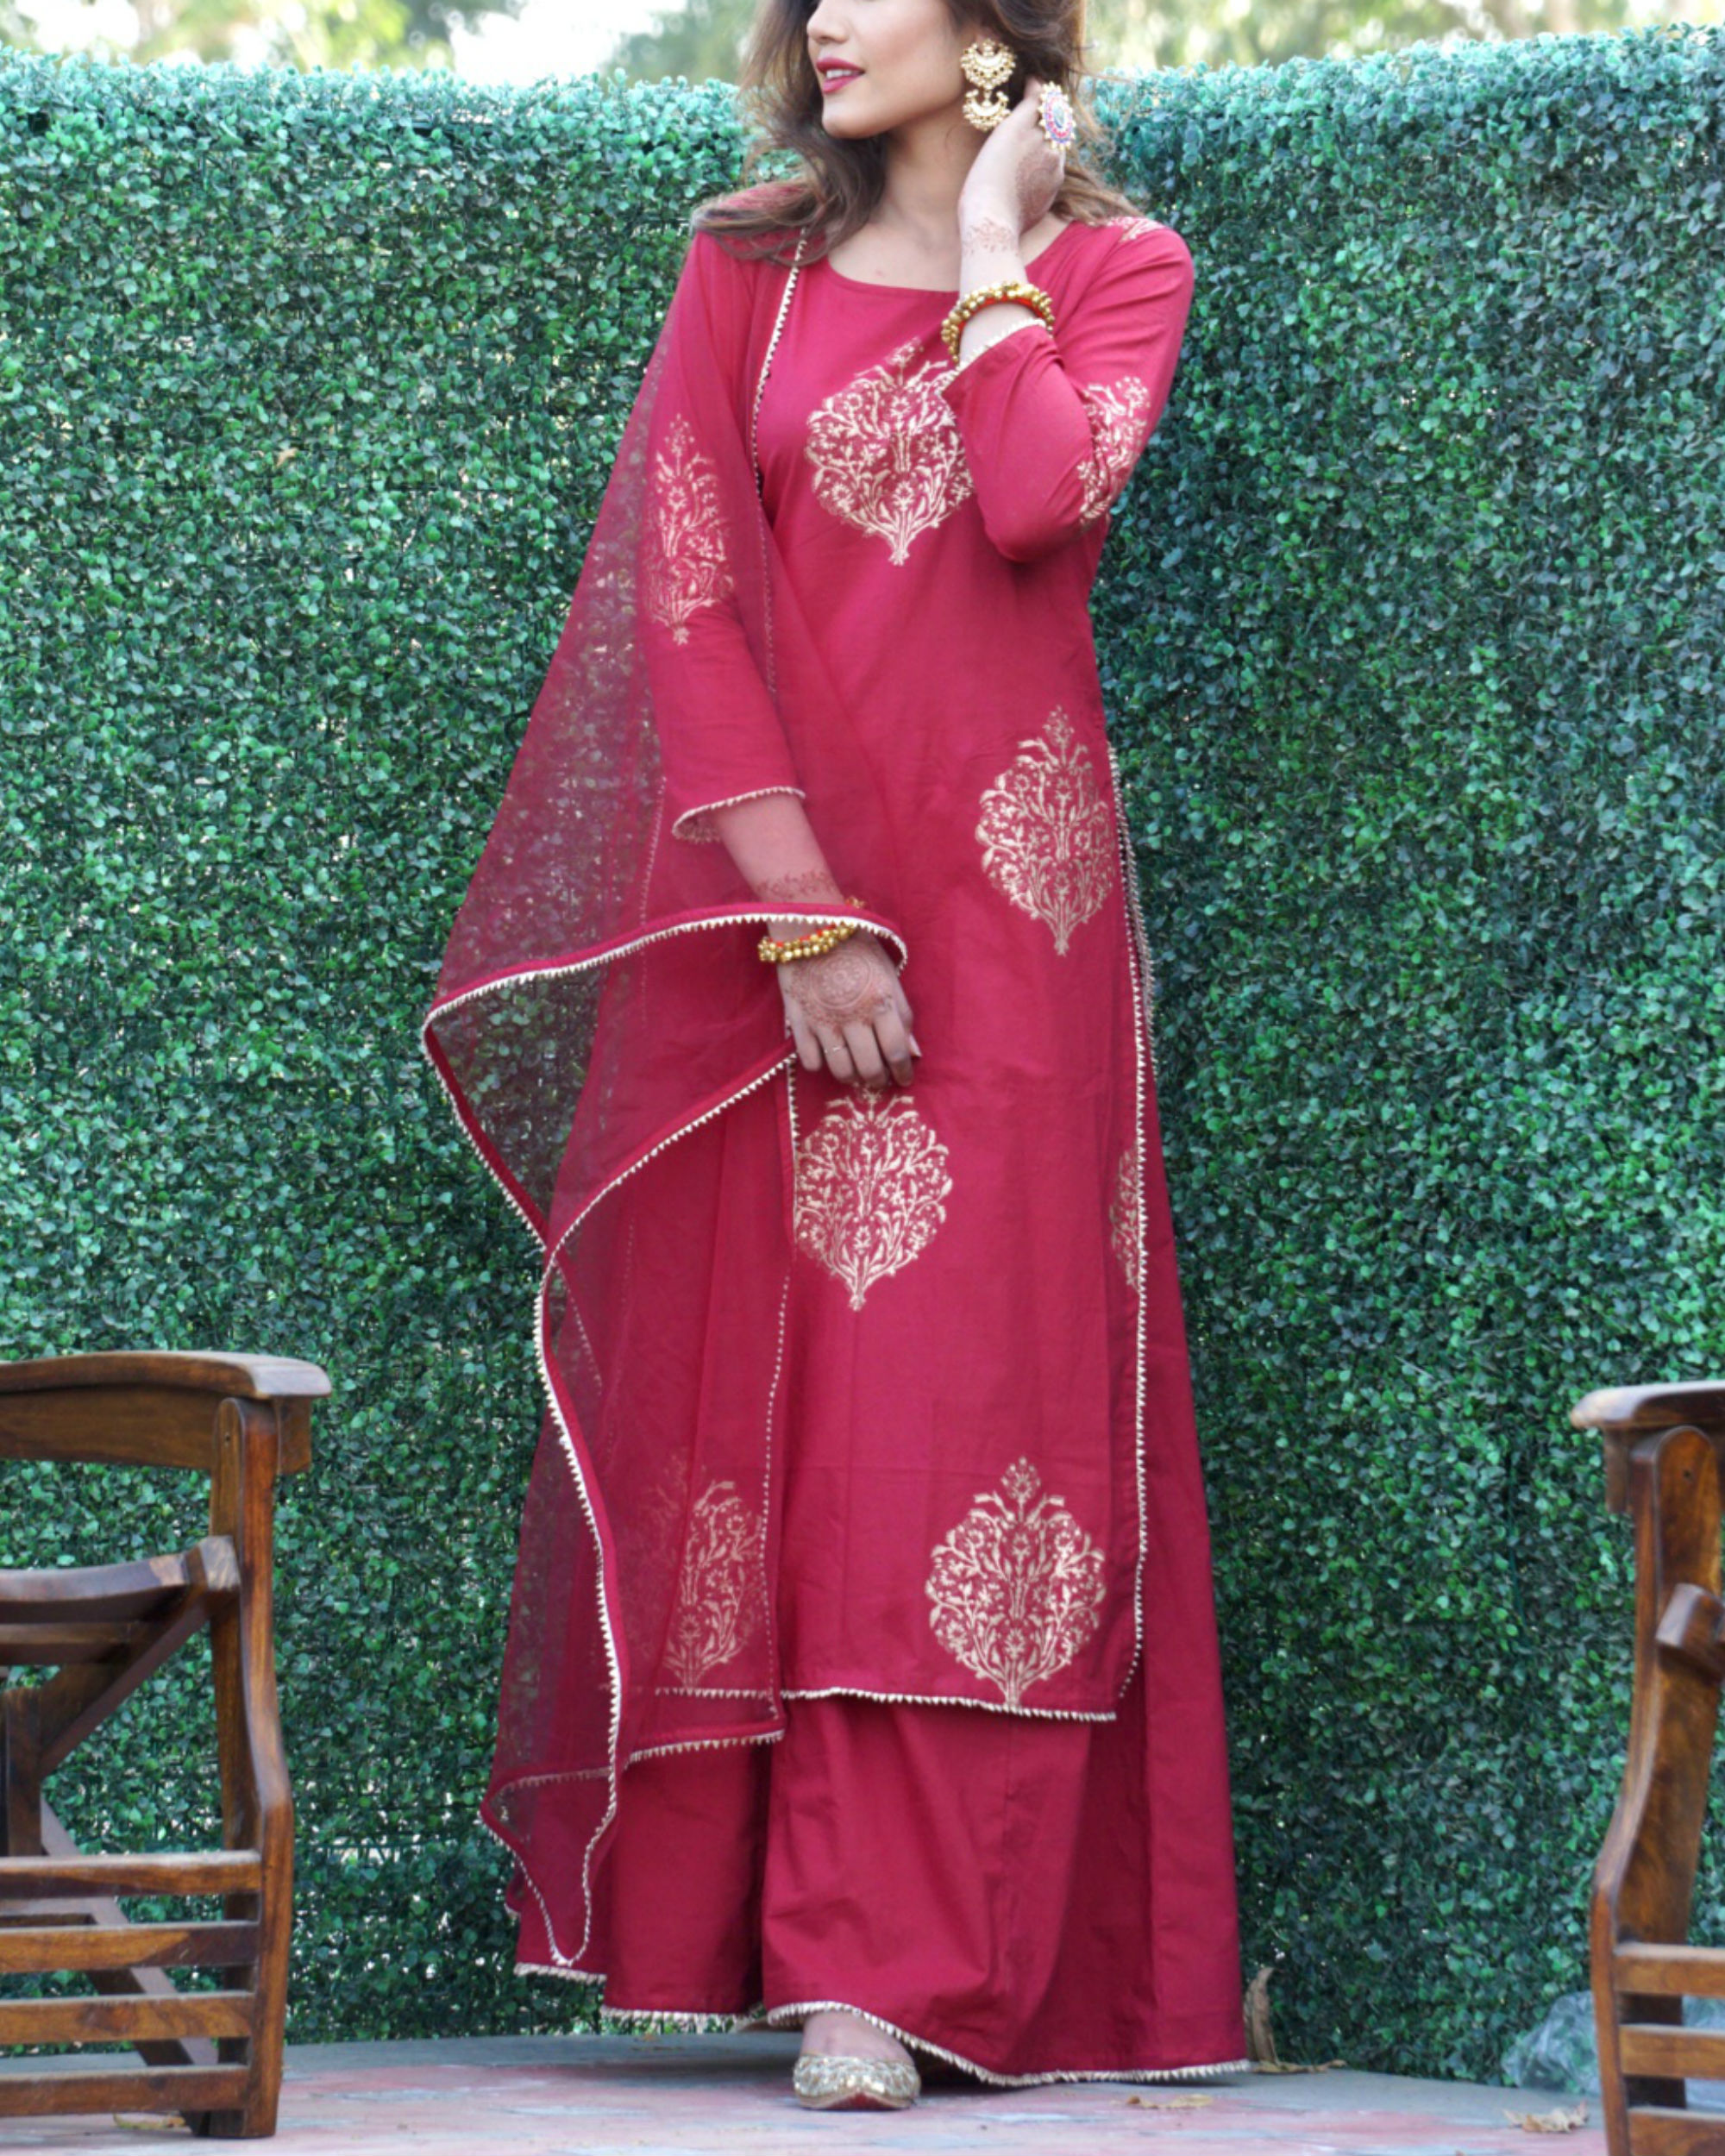 Maroon gold print sharara set with net dupatta